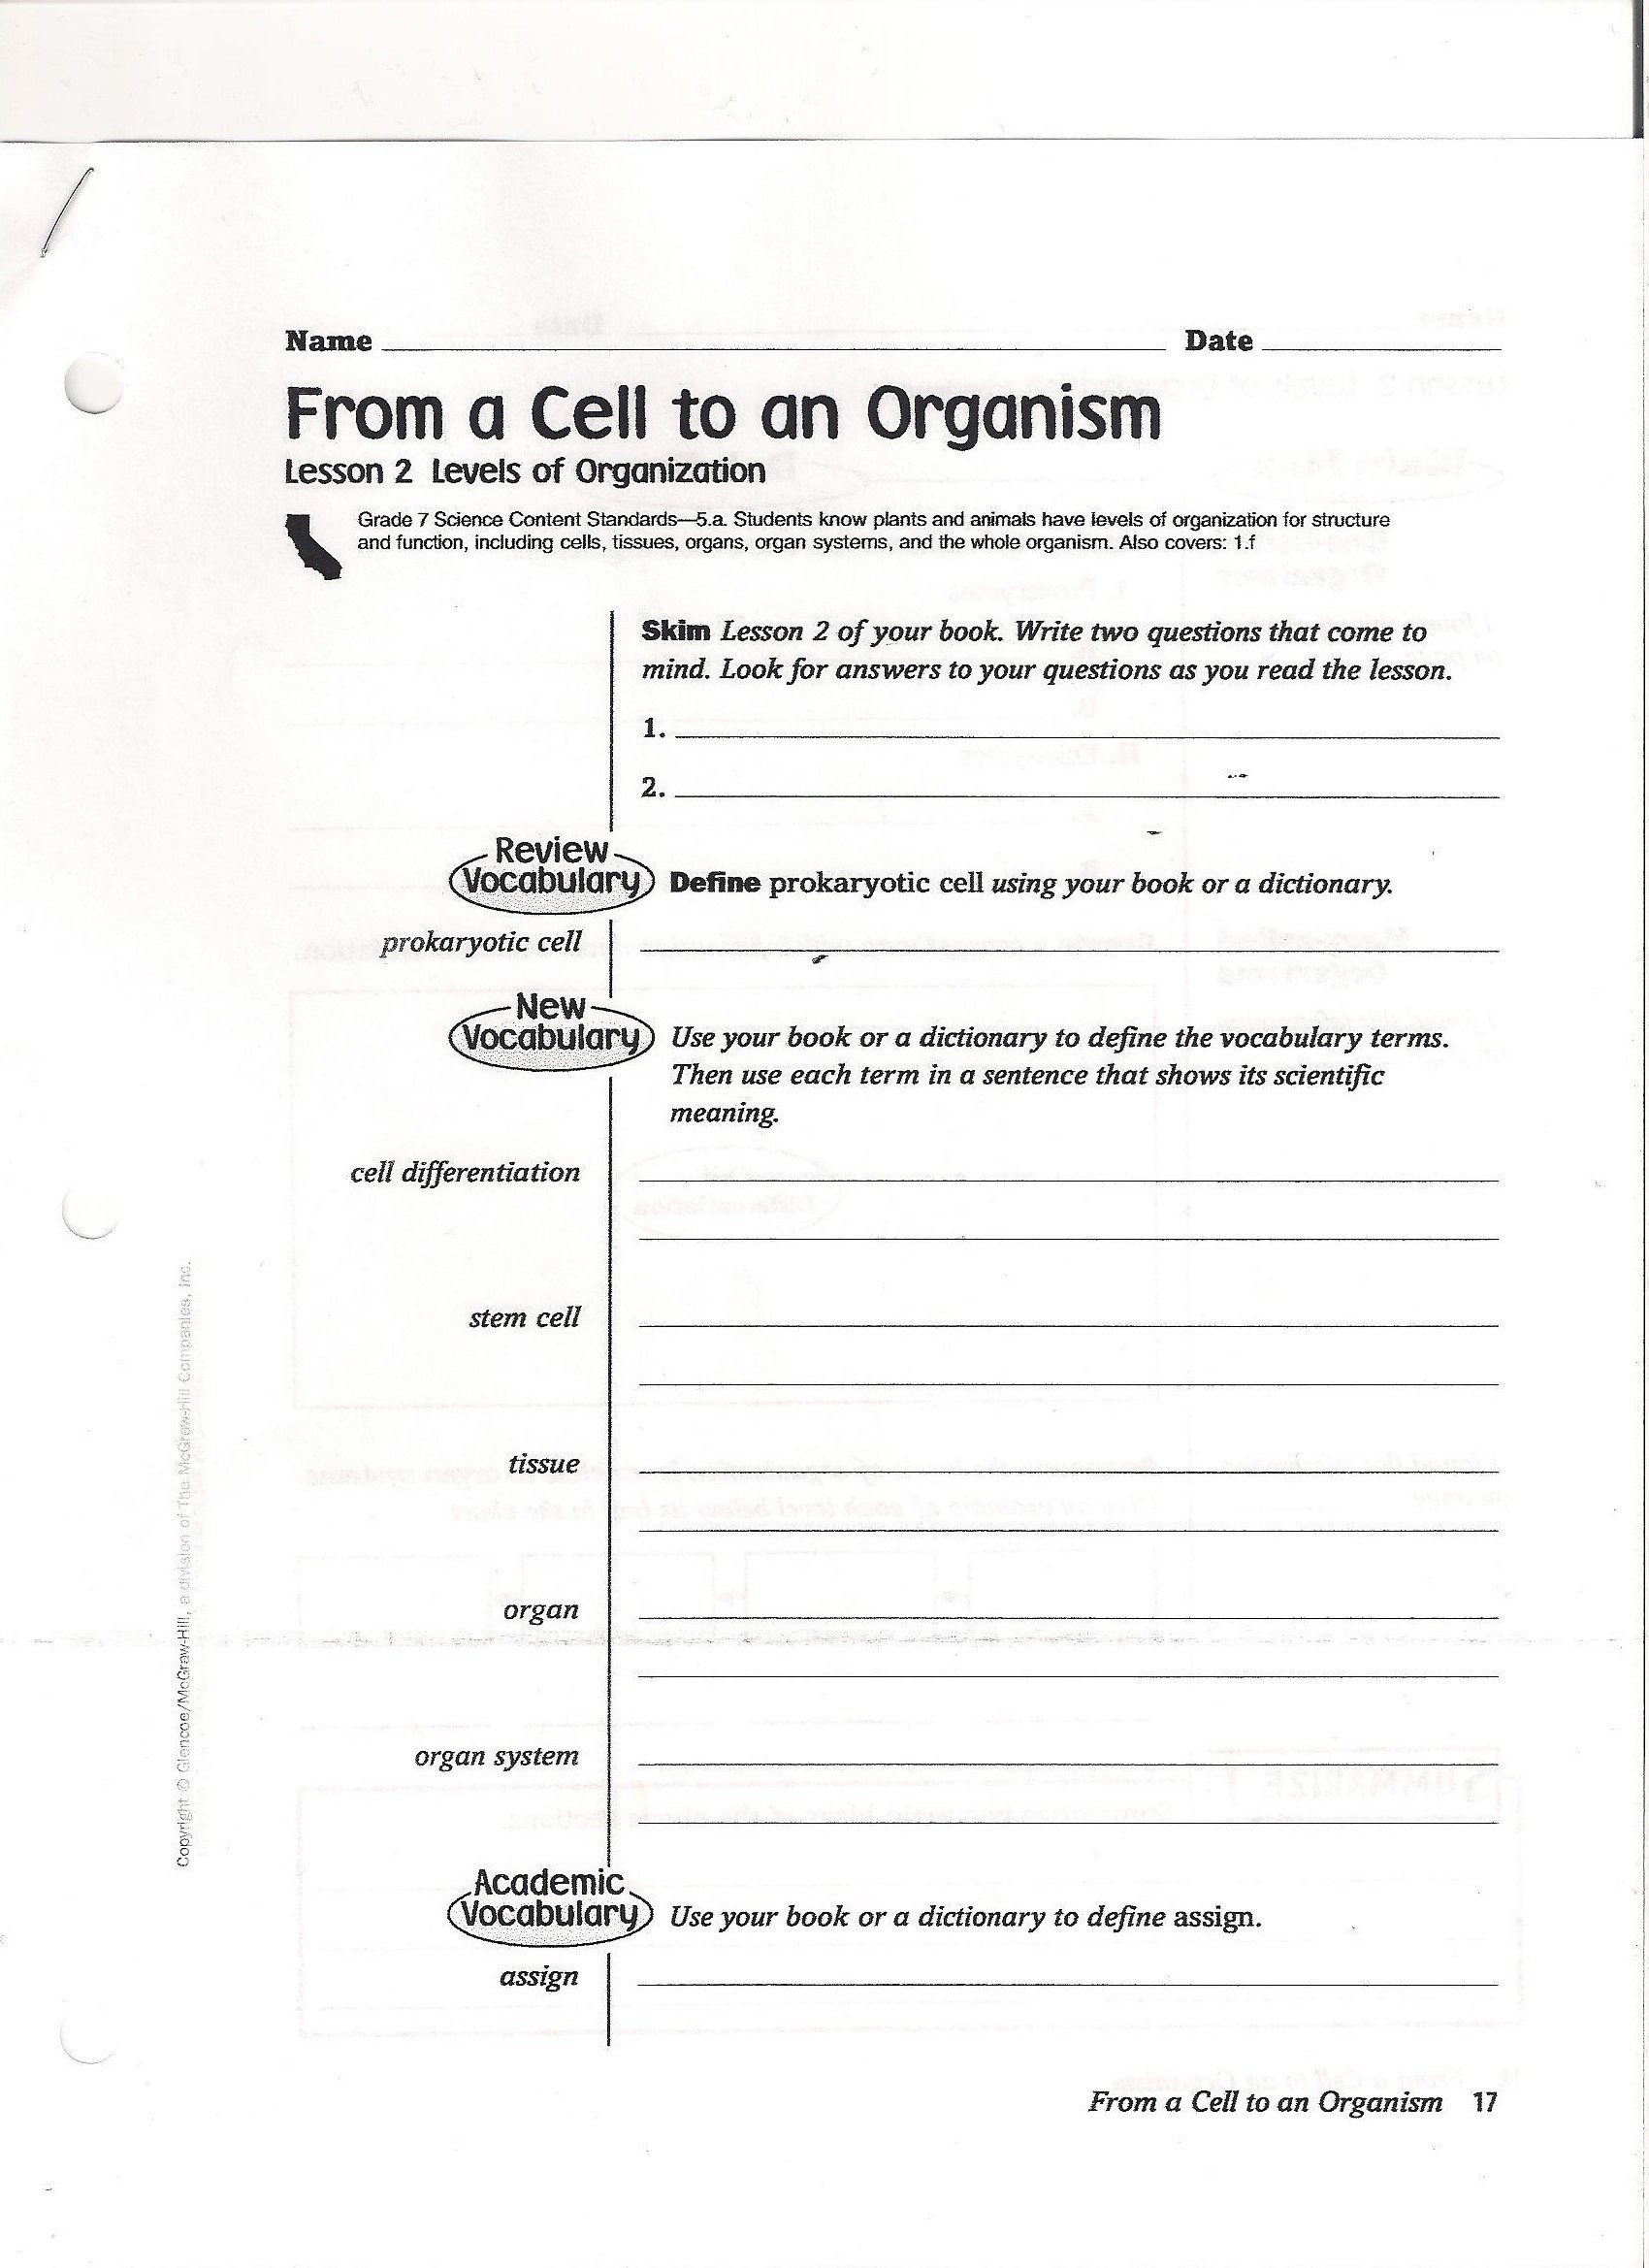 7th Grade Science Worksheets Pdf 8th Grade Reading Free Printable Science Experiment